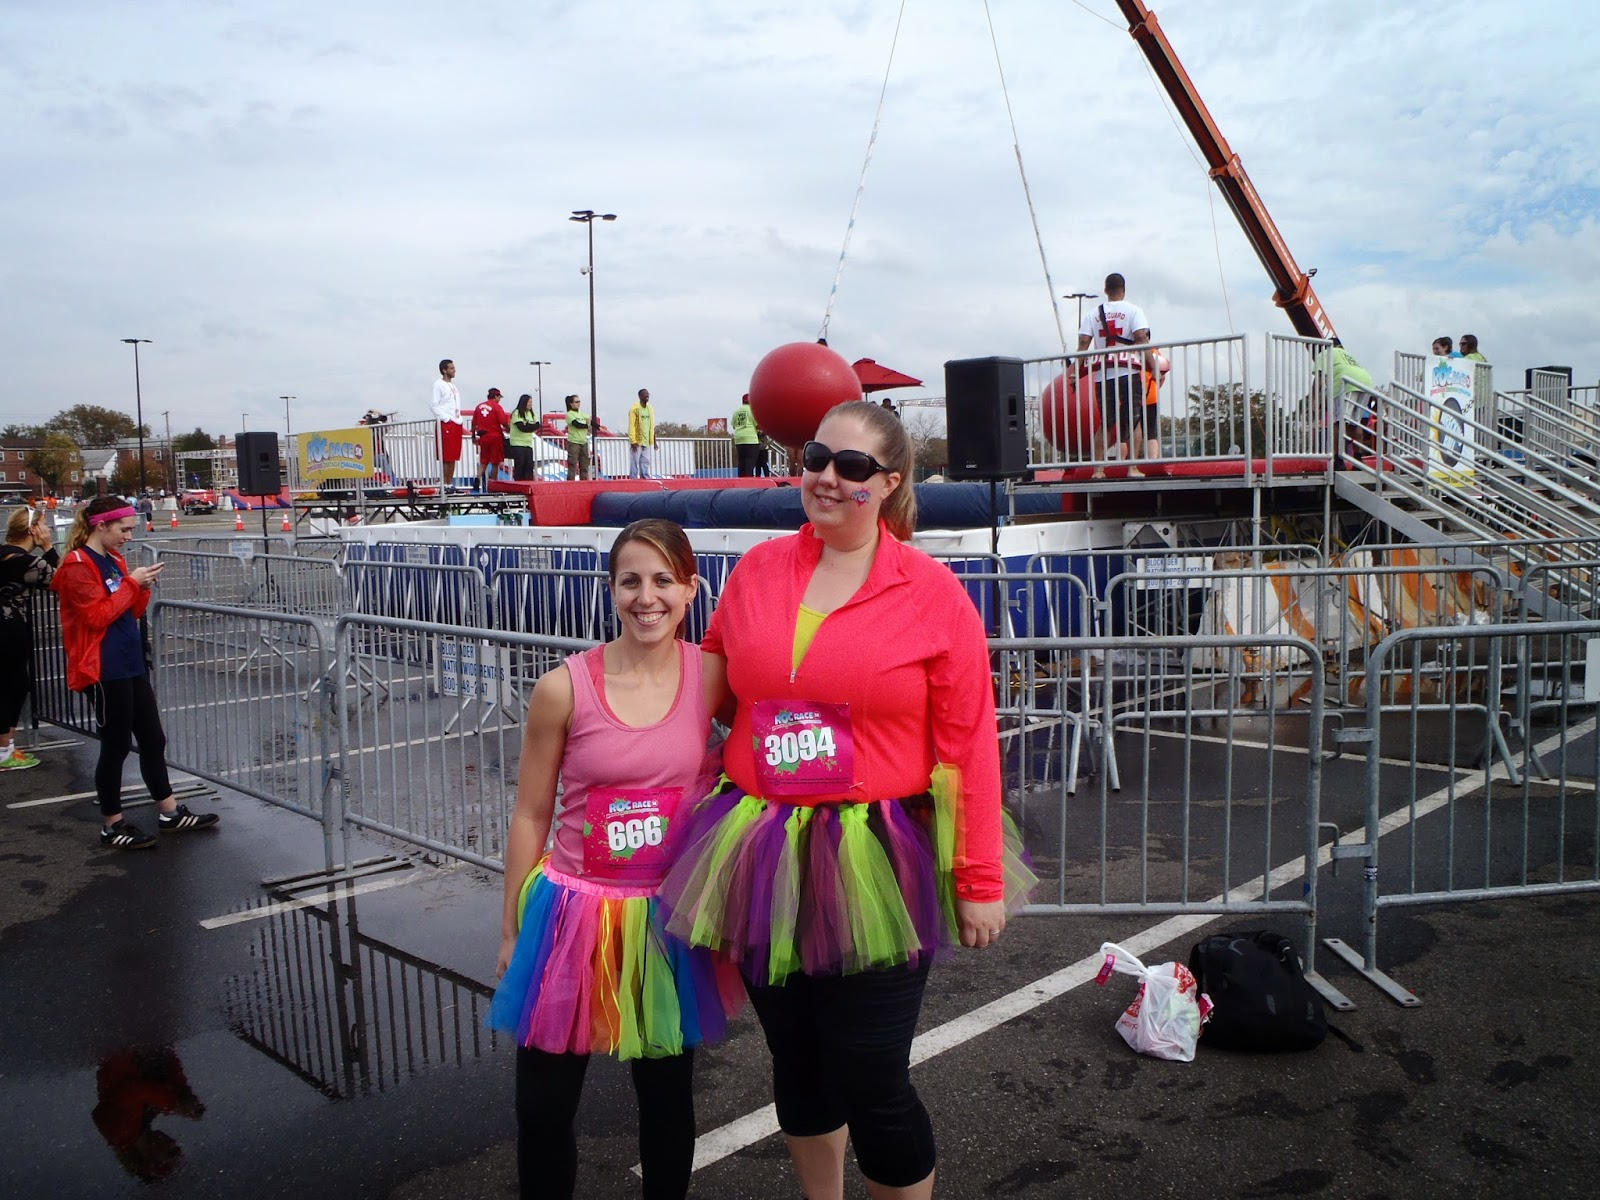 Ridiculous obstacle race tutu